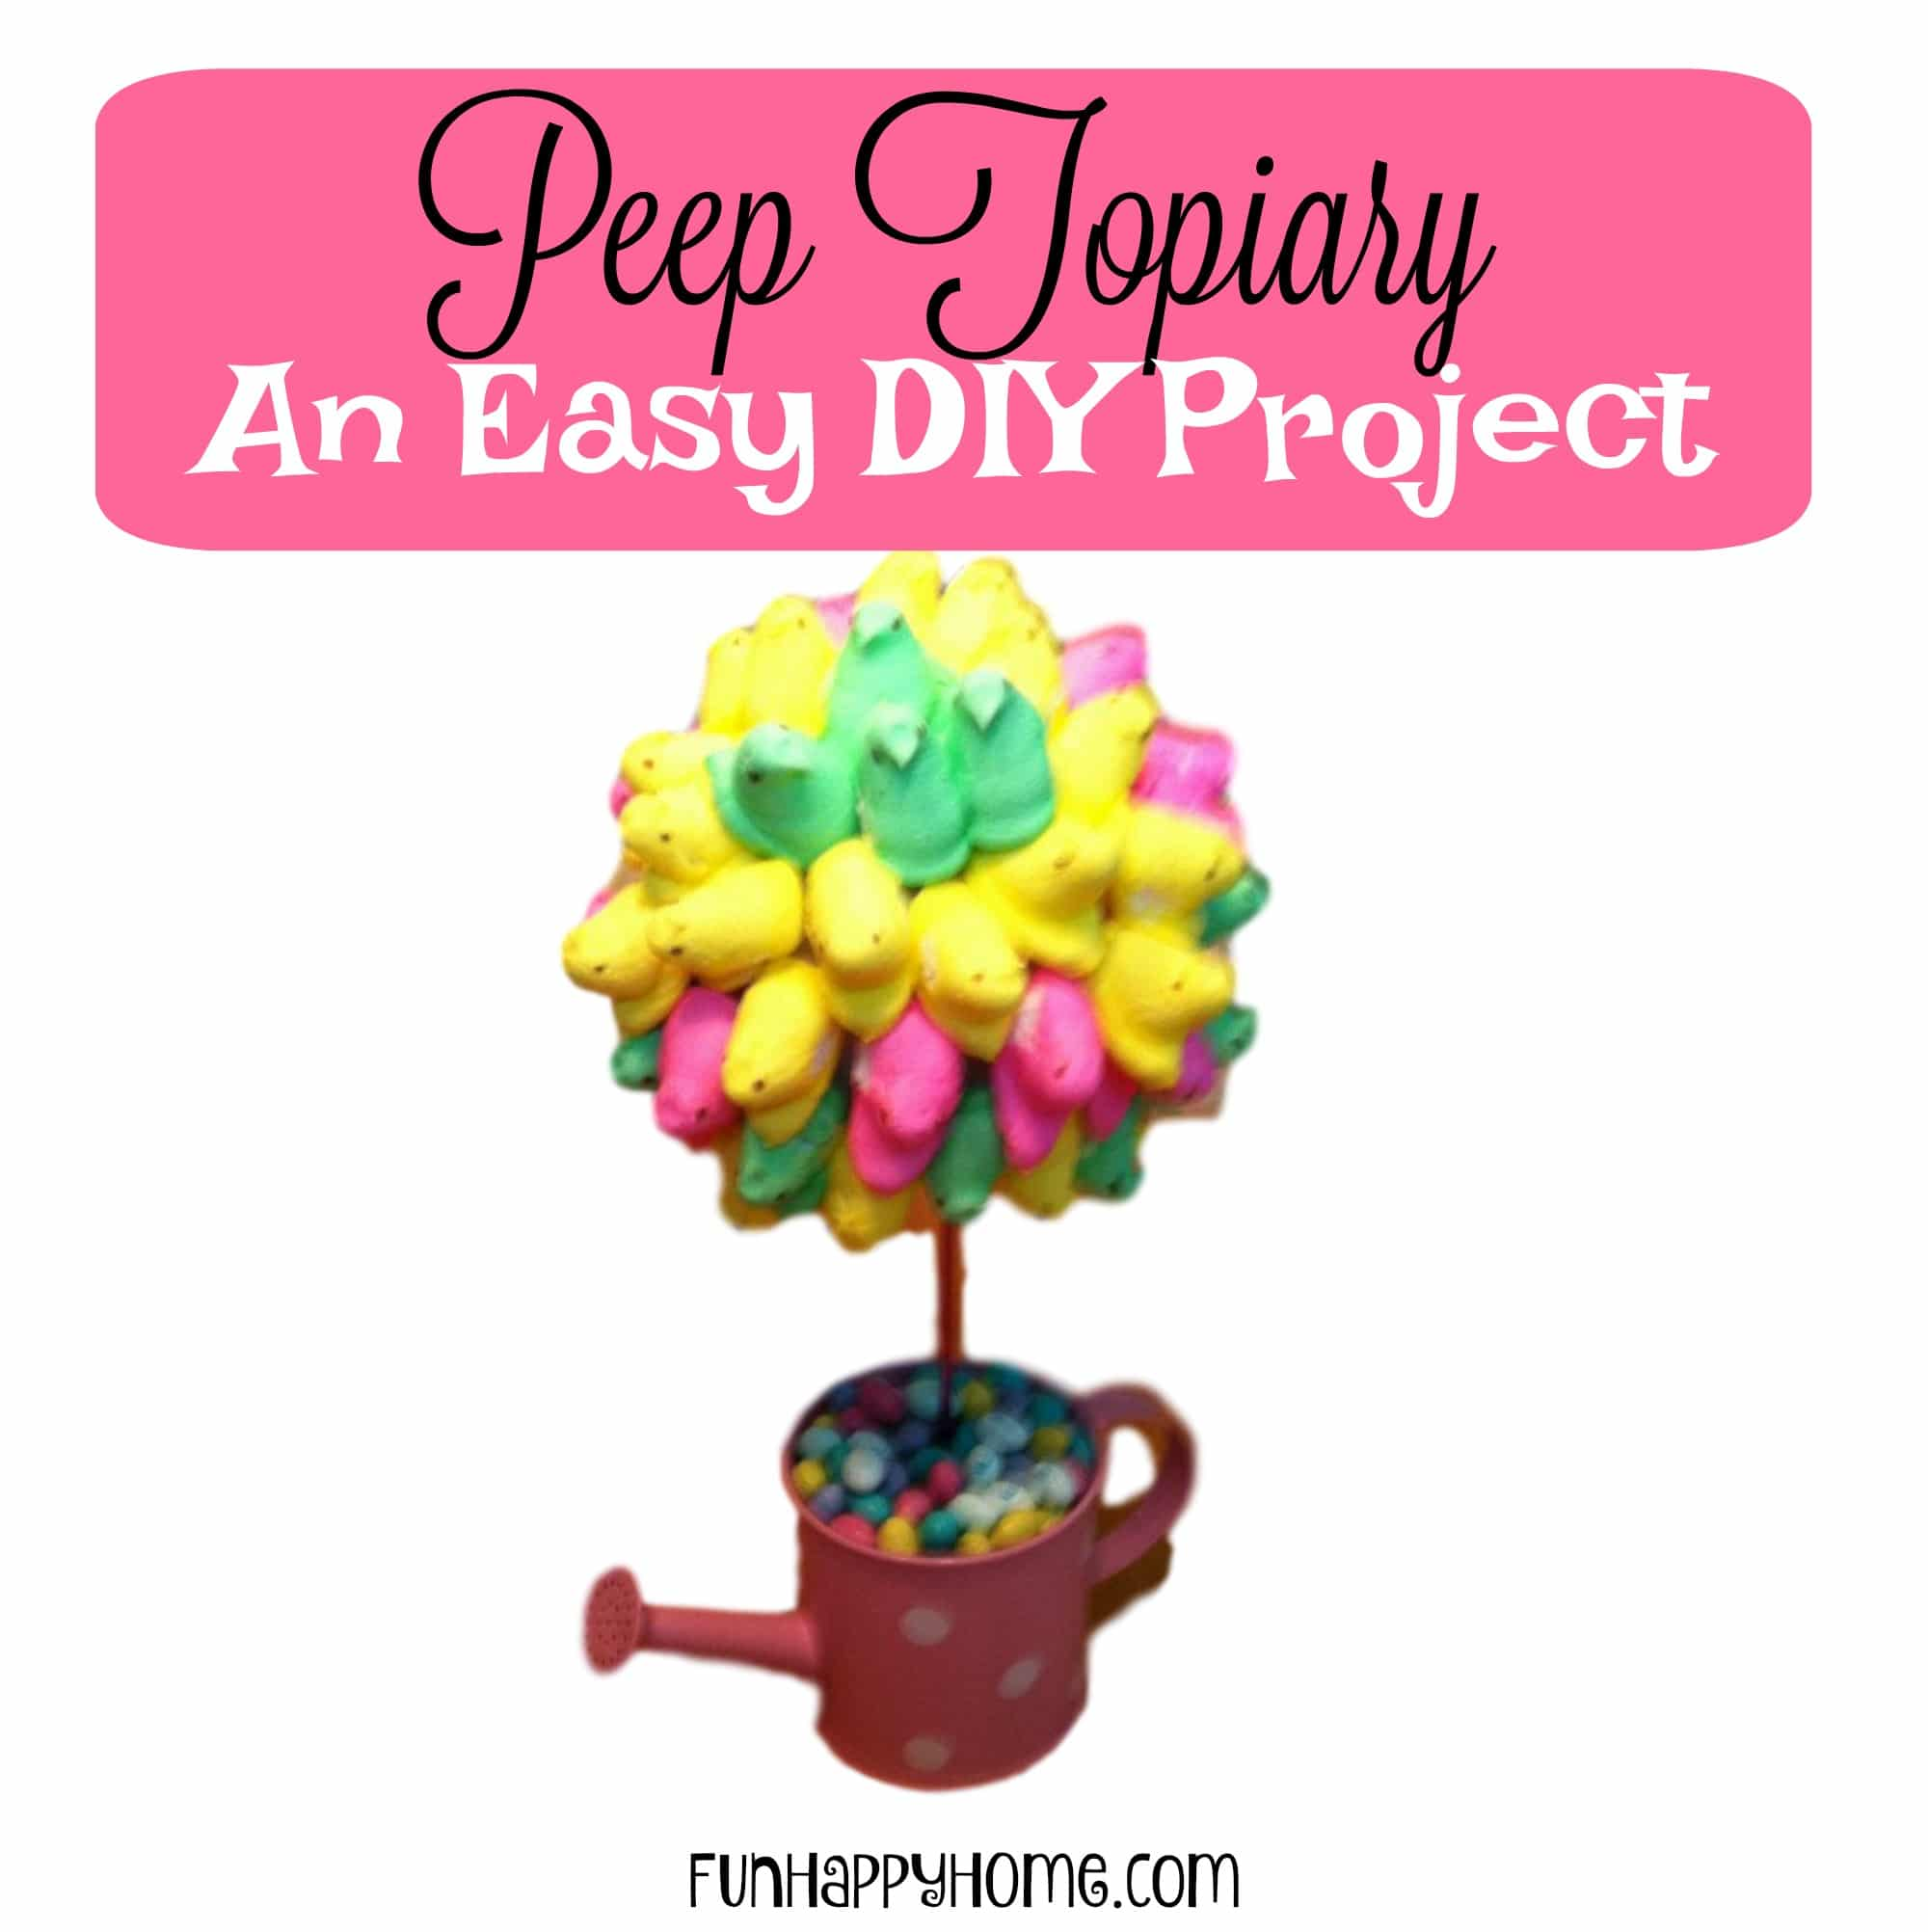 Peep Topiary An Easy DIY Project